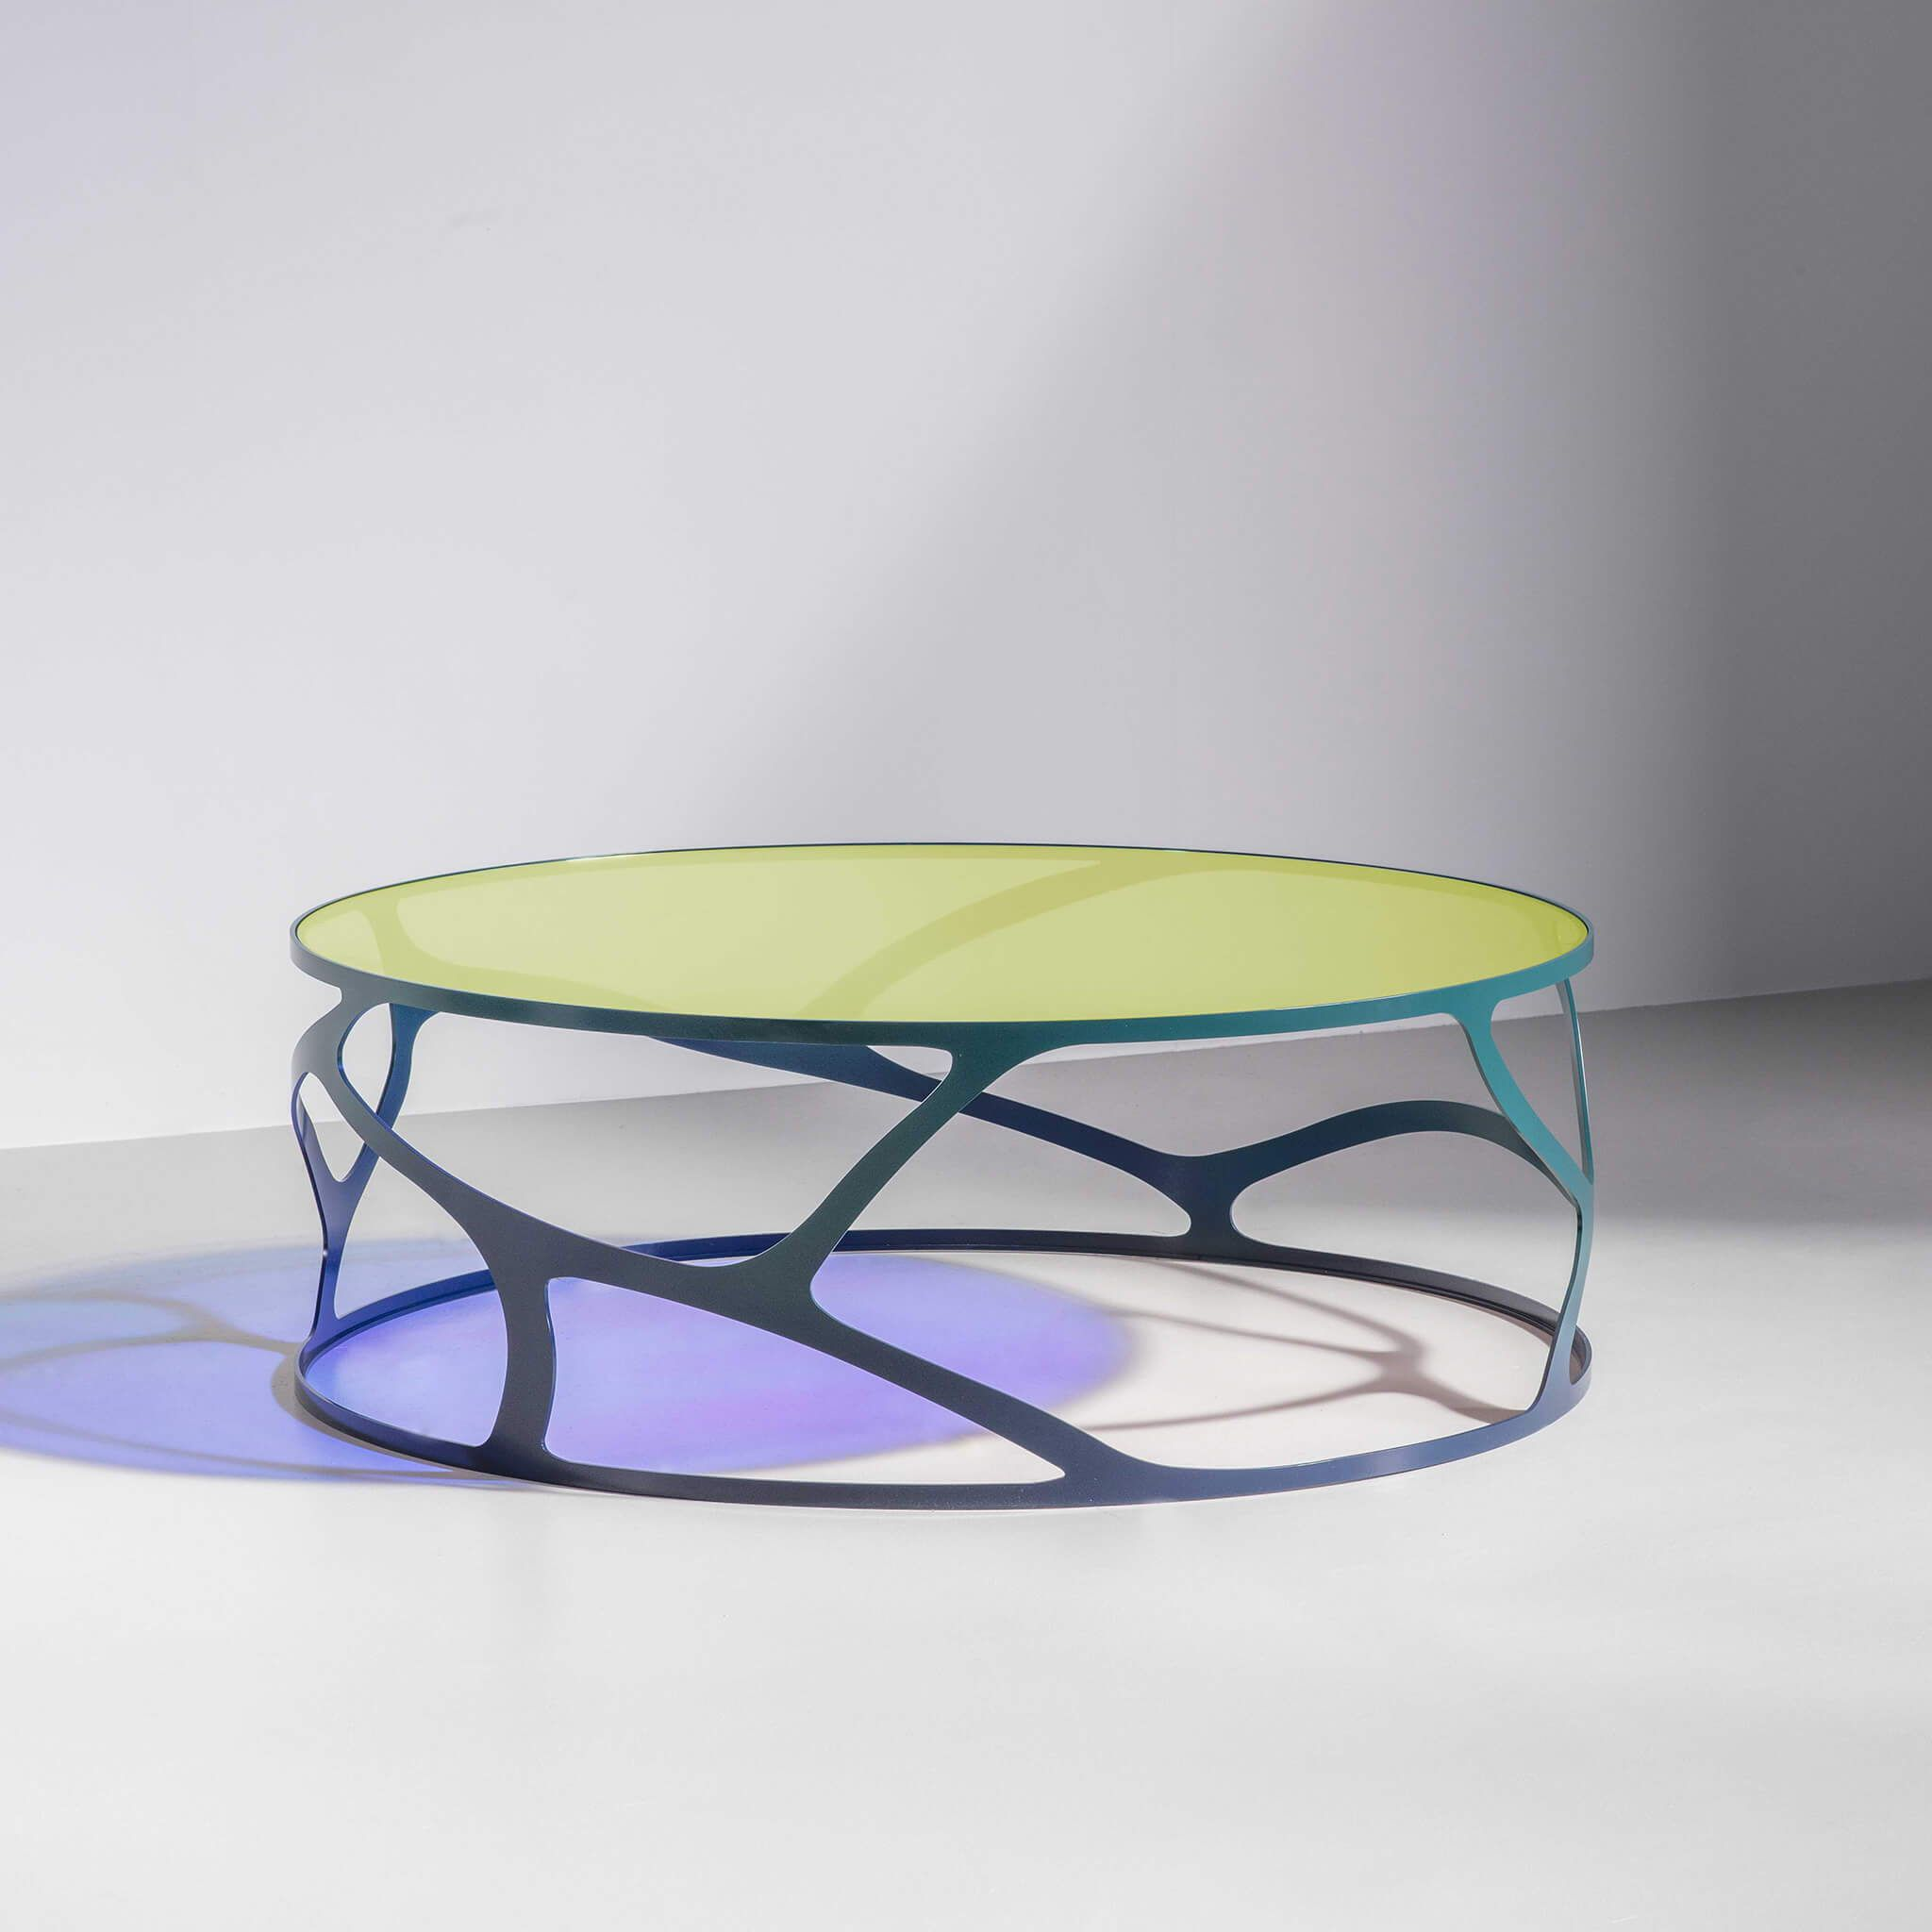 Papillon Colourful Round Coffee Table Modern Funriture By Tom Faulkner Coffee Table Round Coffee Table Modern Luxury Modern Furniture [ 2048 x 2048 Pixel ]